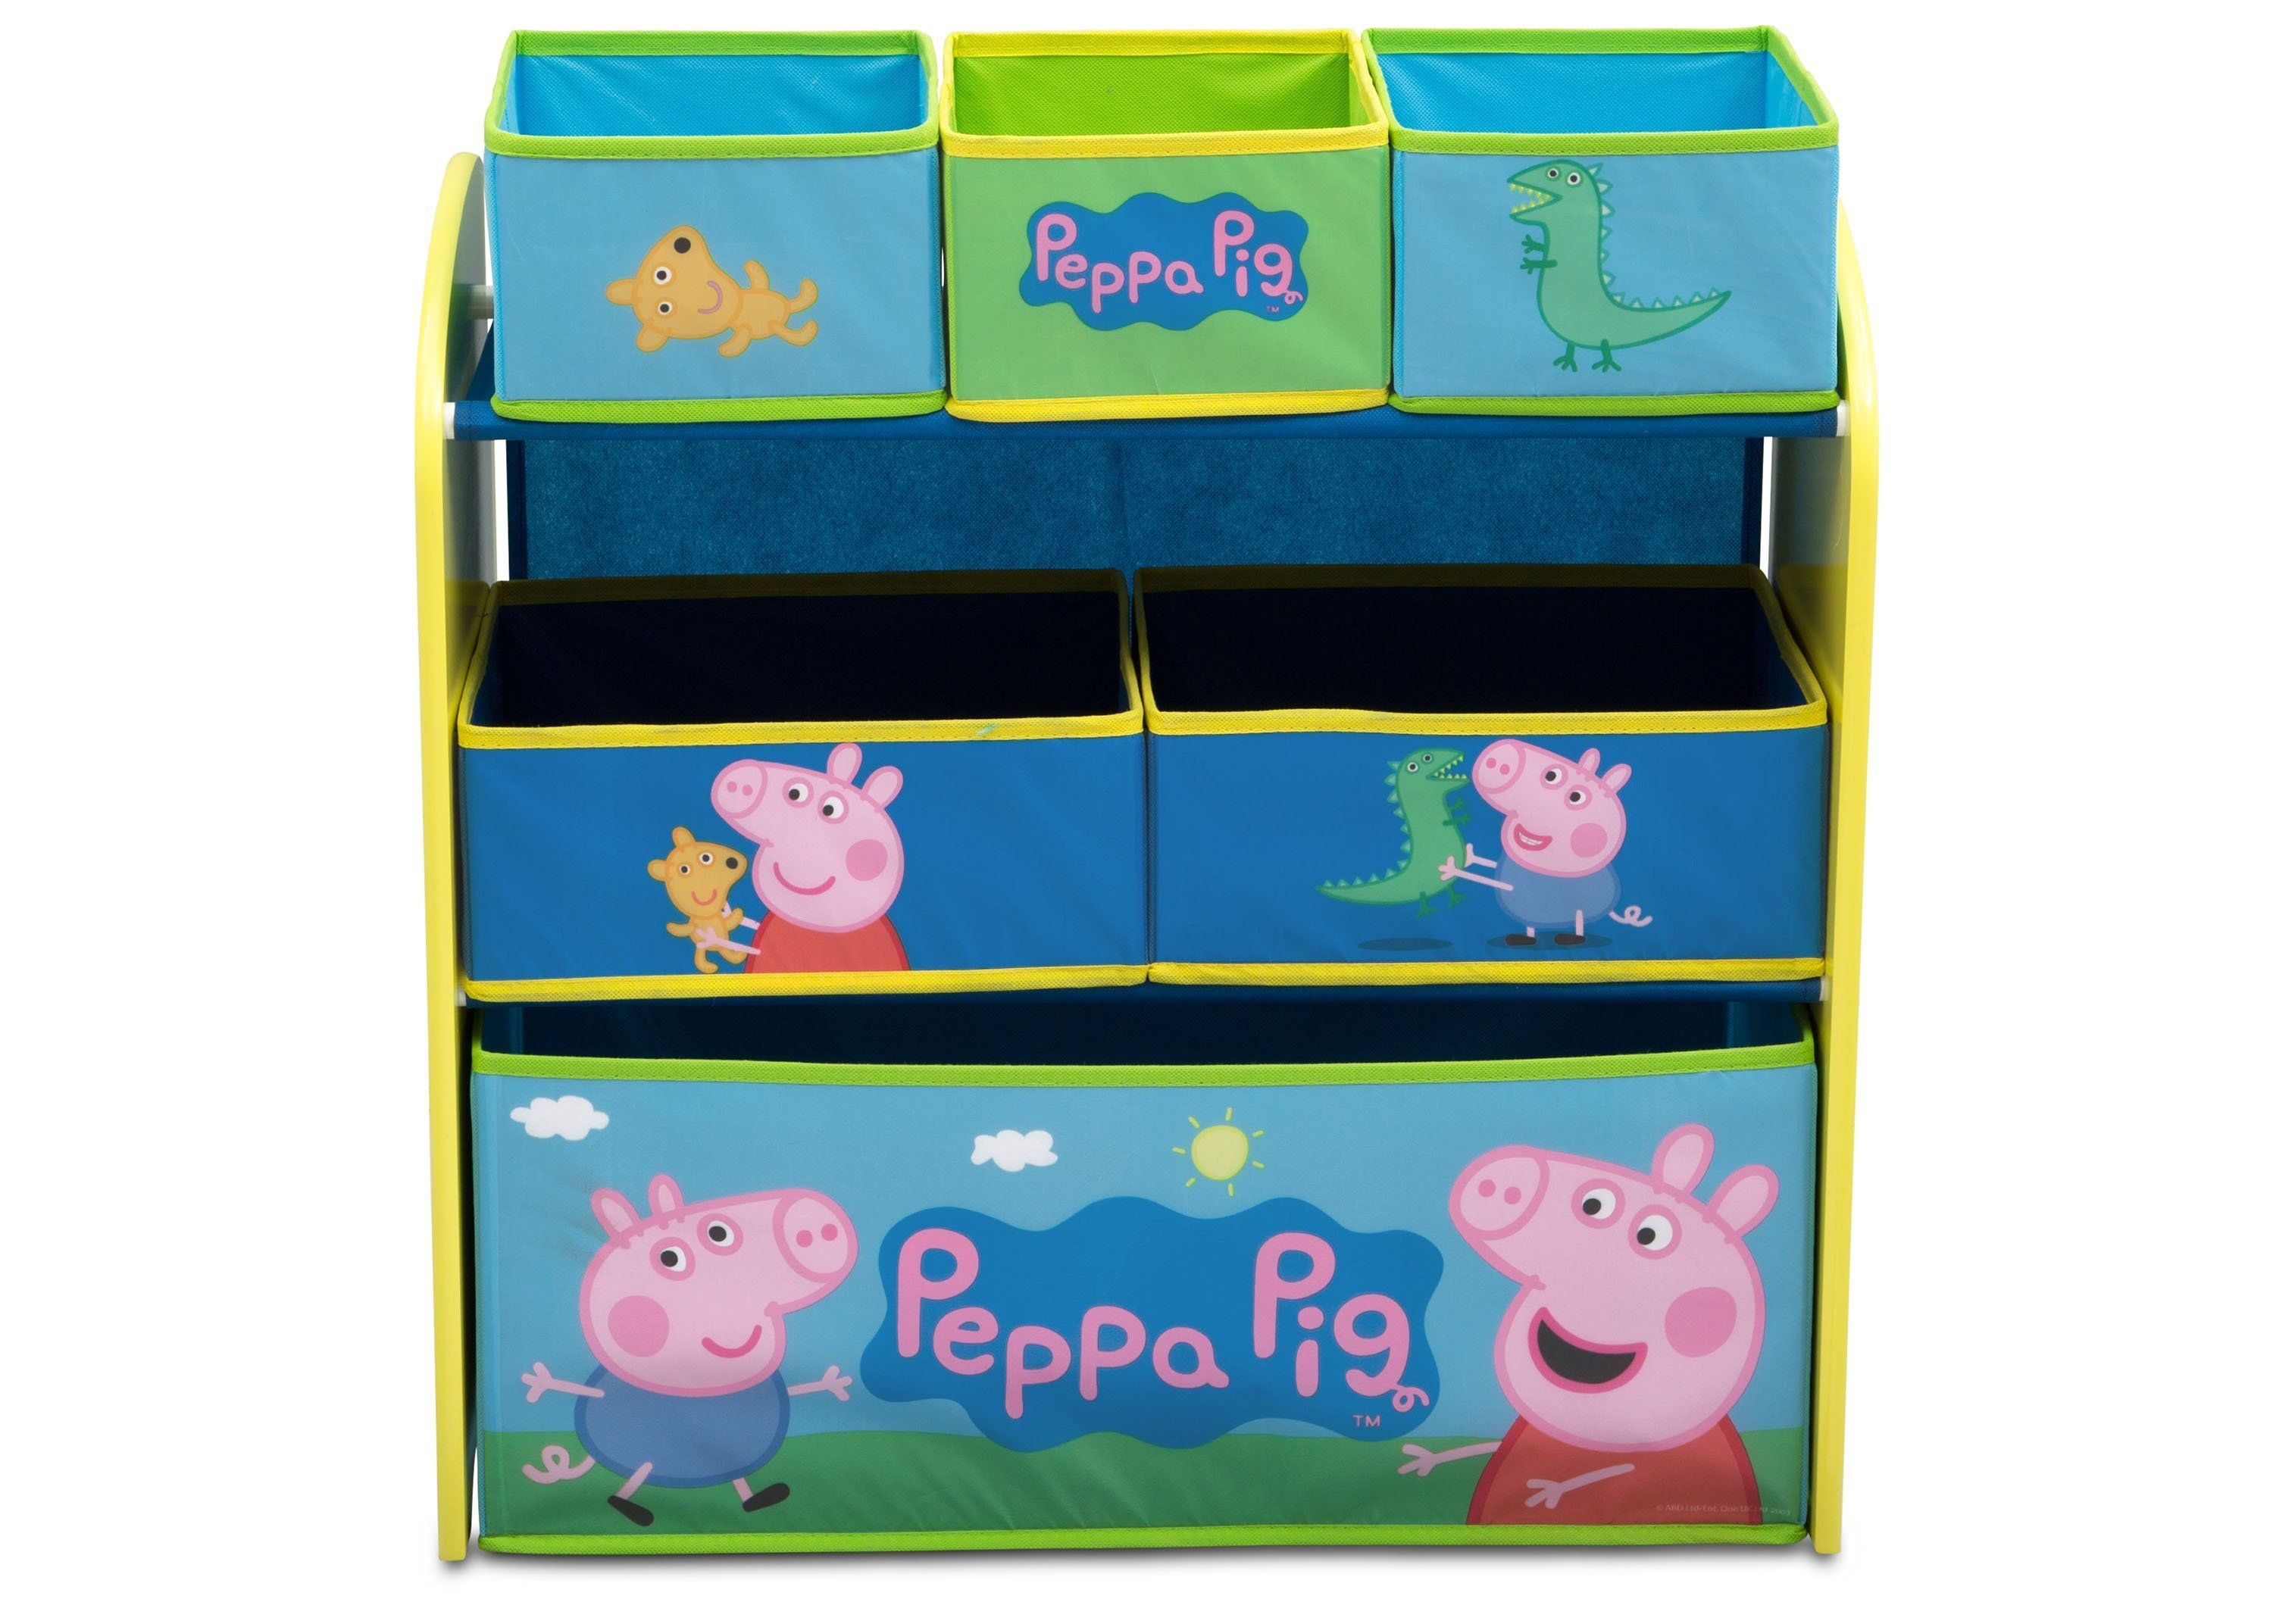 Paw Patrol Toy Organizer Bin Cubby Kids Child Storage Box: Peppa Pig Multi-Bin Toy Organizer